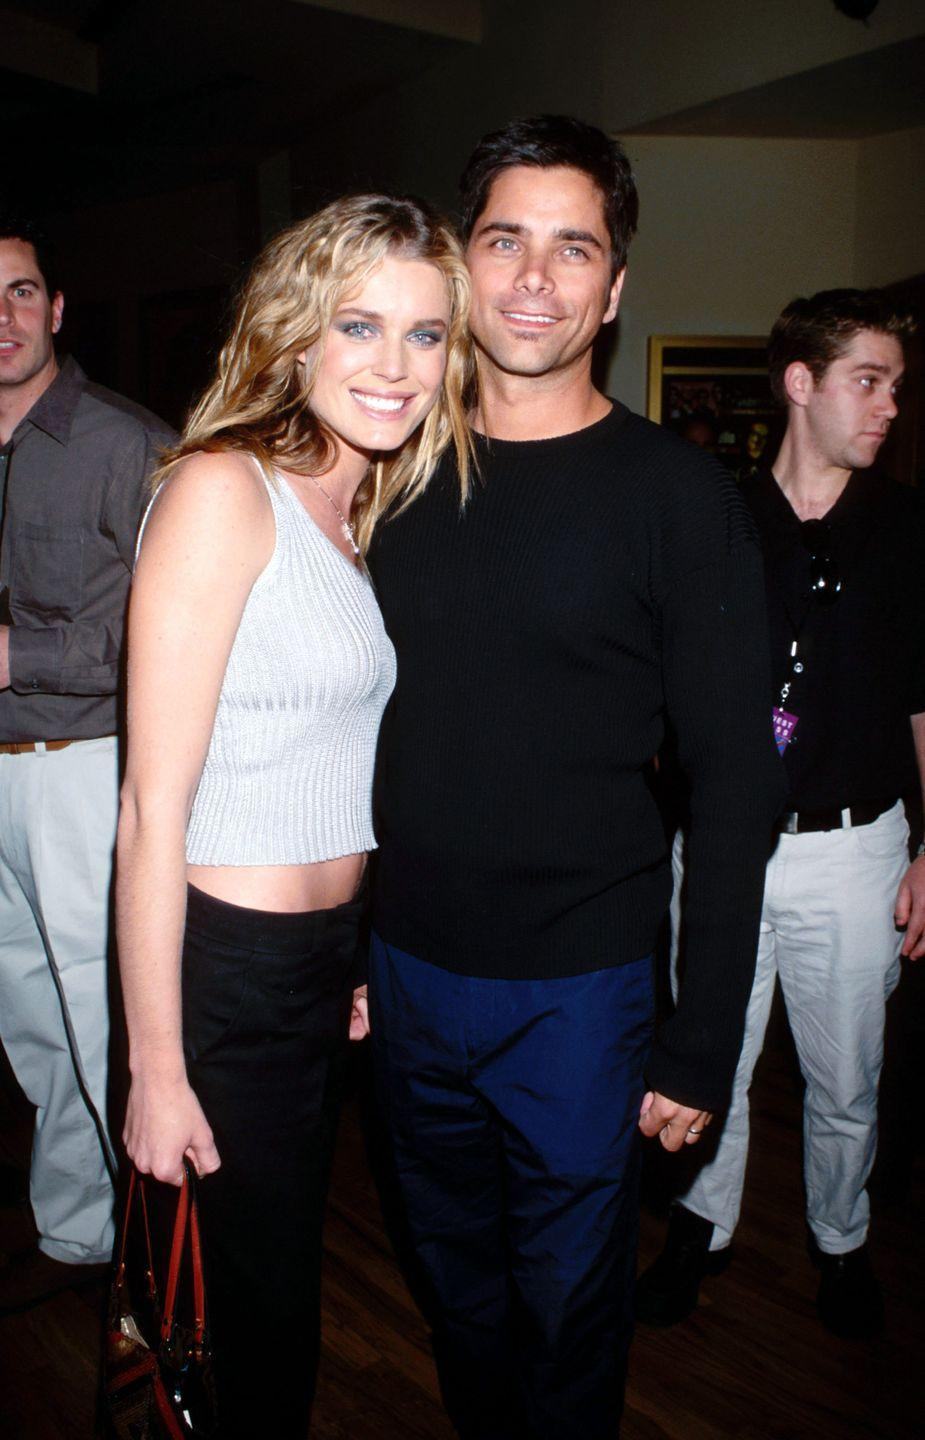 <p>It's a love story like any other, really. They first met at the Victoria's Secret Fashion Show. She was a model, he was television royalty—well, maybe not like any other. They were married from 1998 until 2005. After their divorce, Romijn married Jerry O'Connell in 2007 and had twin daughters. Stamos remained a bachelor until 2018, when he married Caitlin McHugh and welcomed a son, Billy. </p>